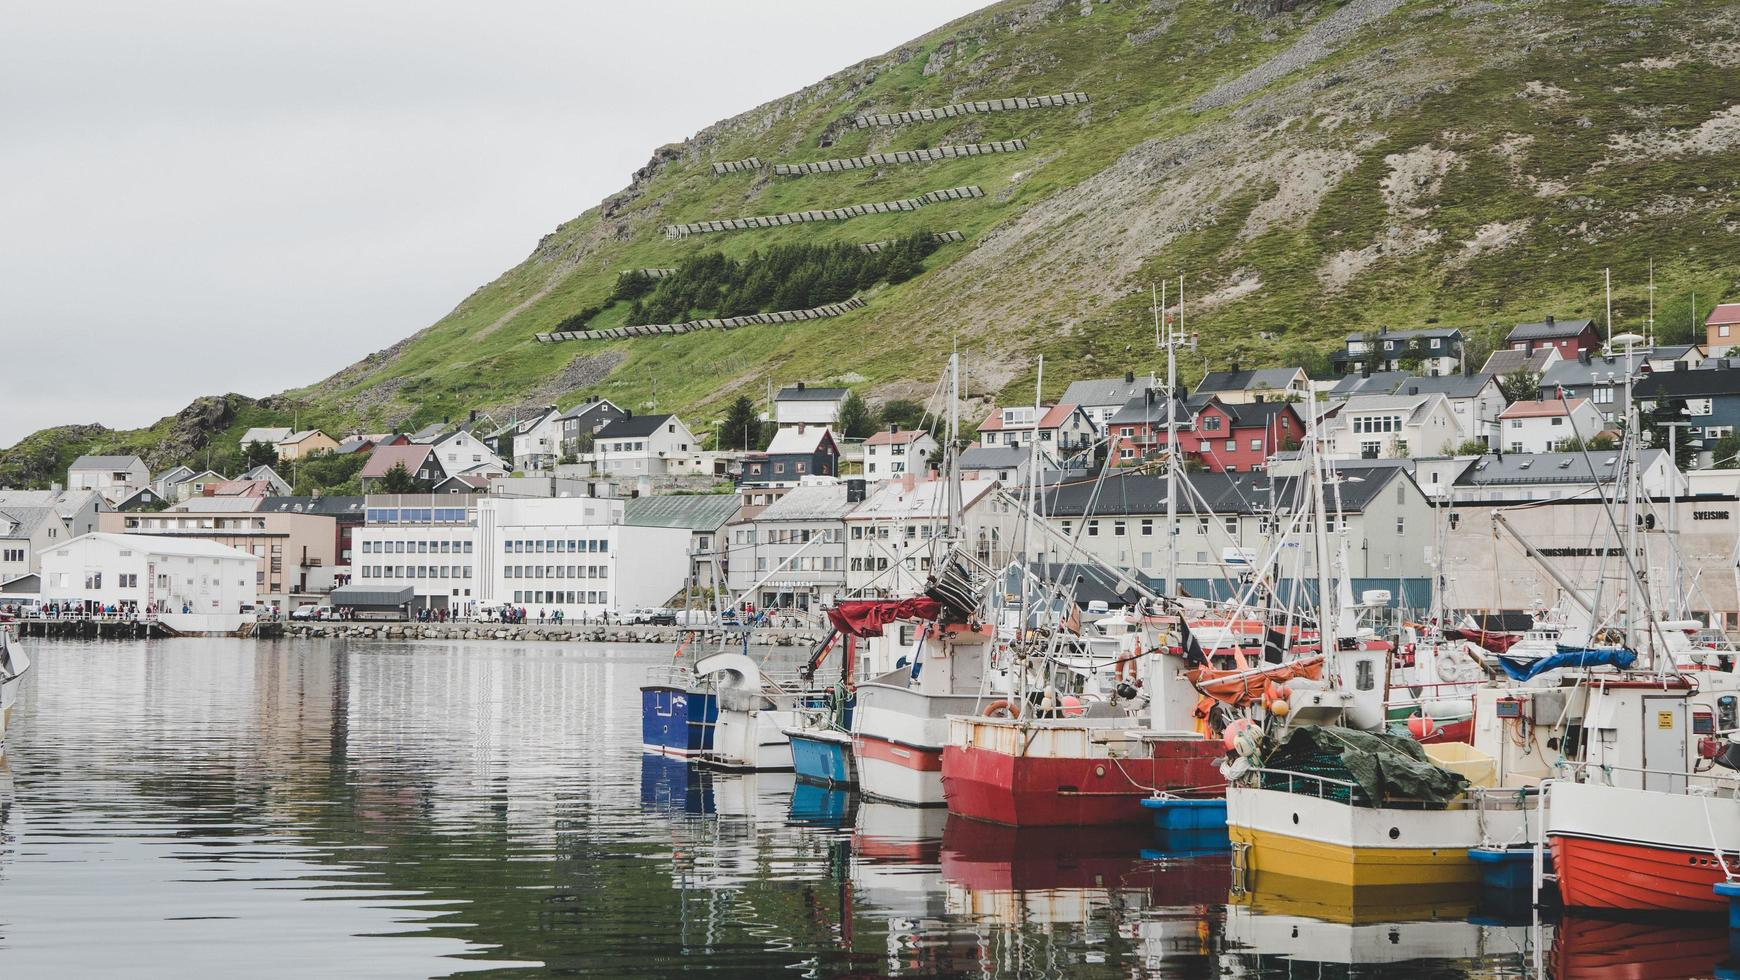 Boats docked with buildings and mountain photo